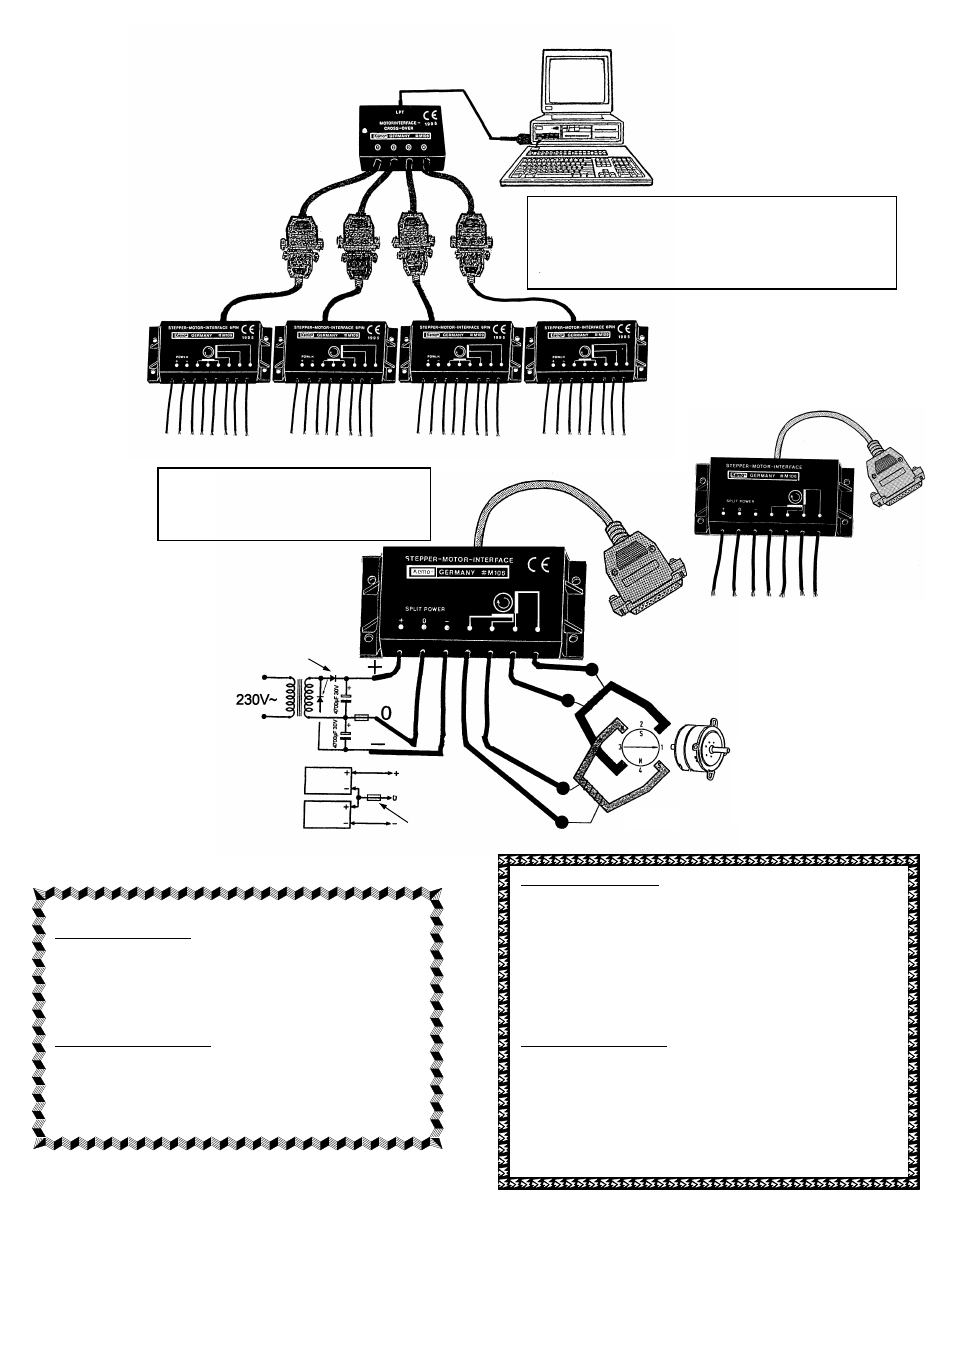 Kemo Electronic M106 User Manual Page 3 4 Stepper Motor Controller Circuit Diagram Pictures